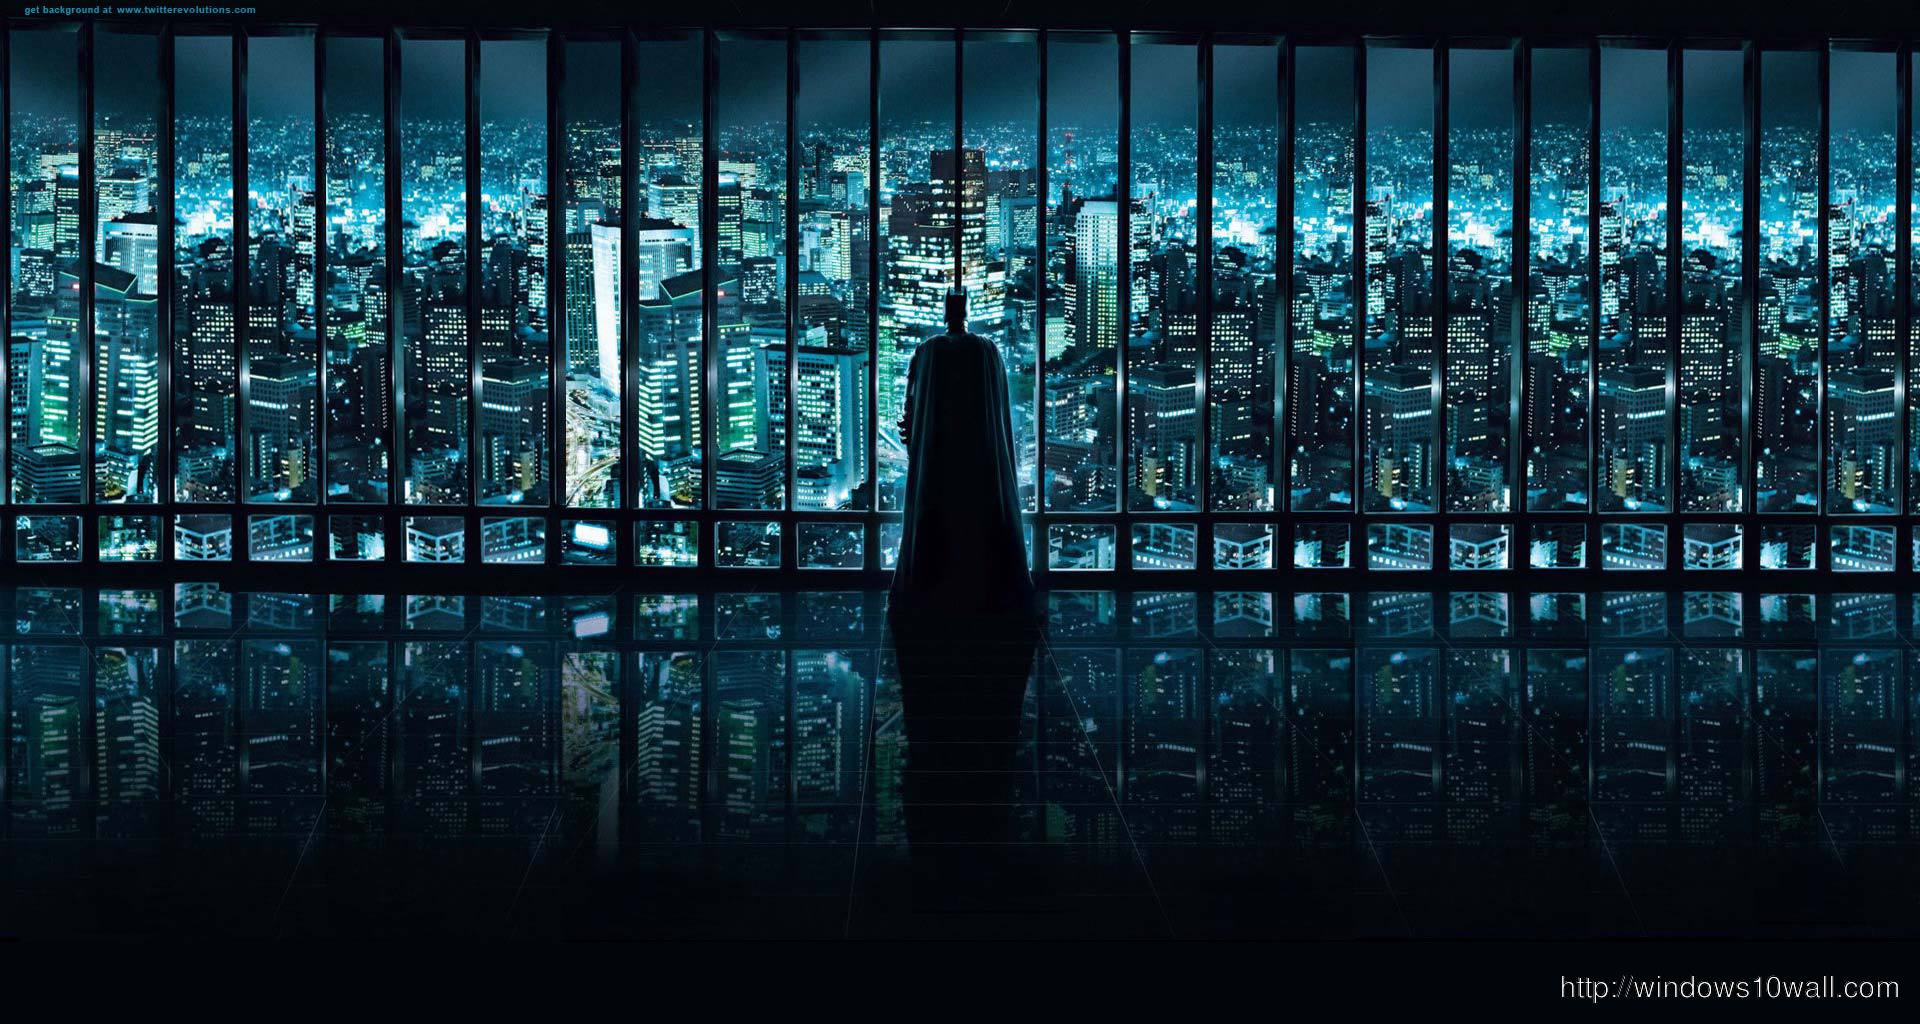 City Panoramic Batman Background Wallpaper windows 10 Wallpapers 1920x1024